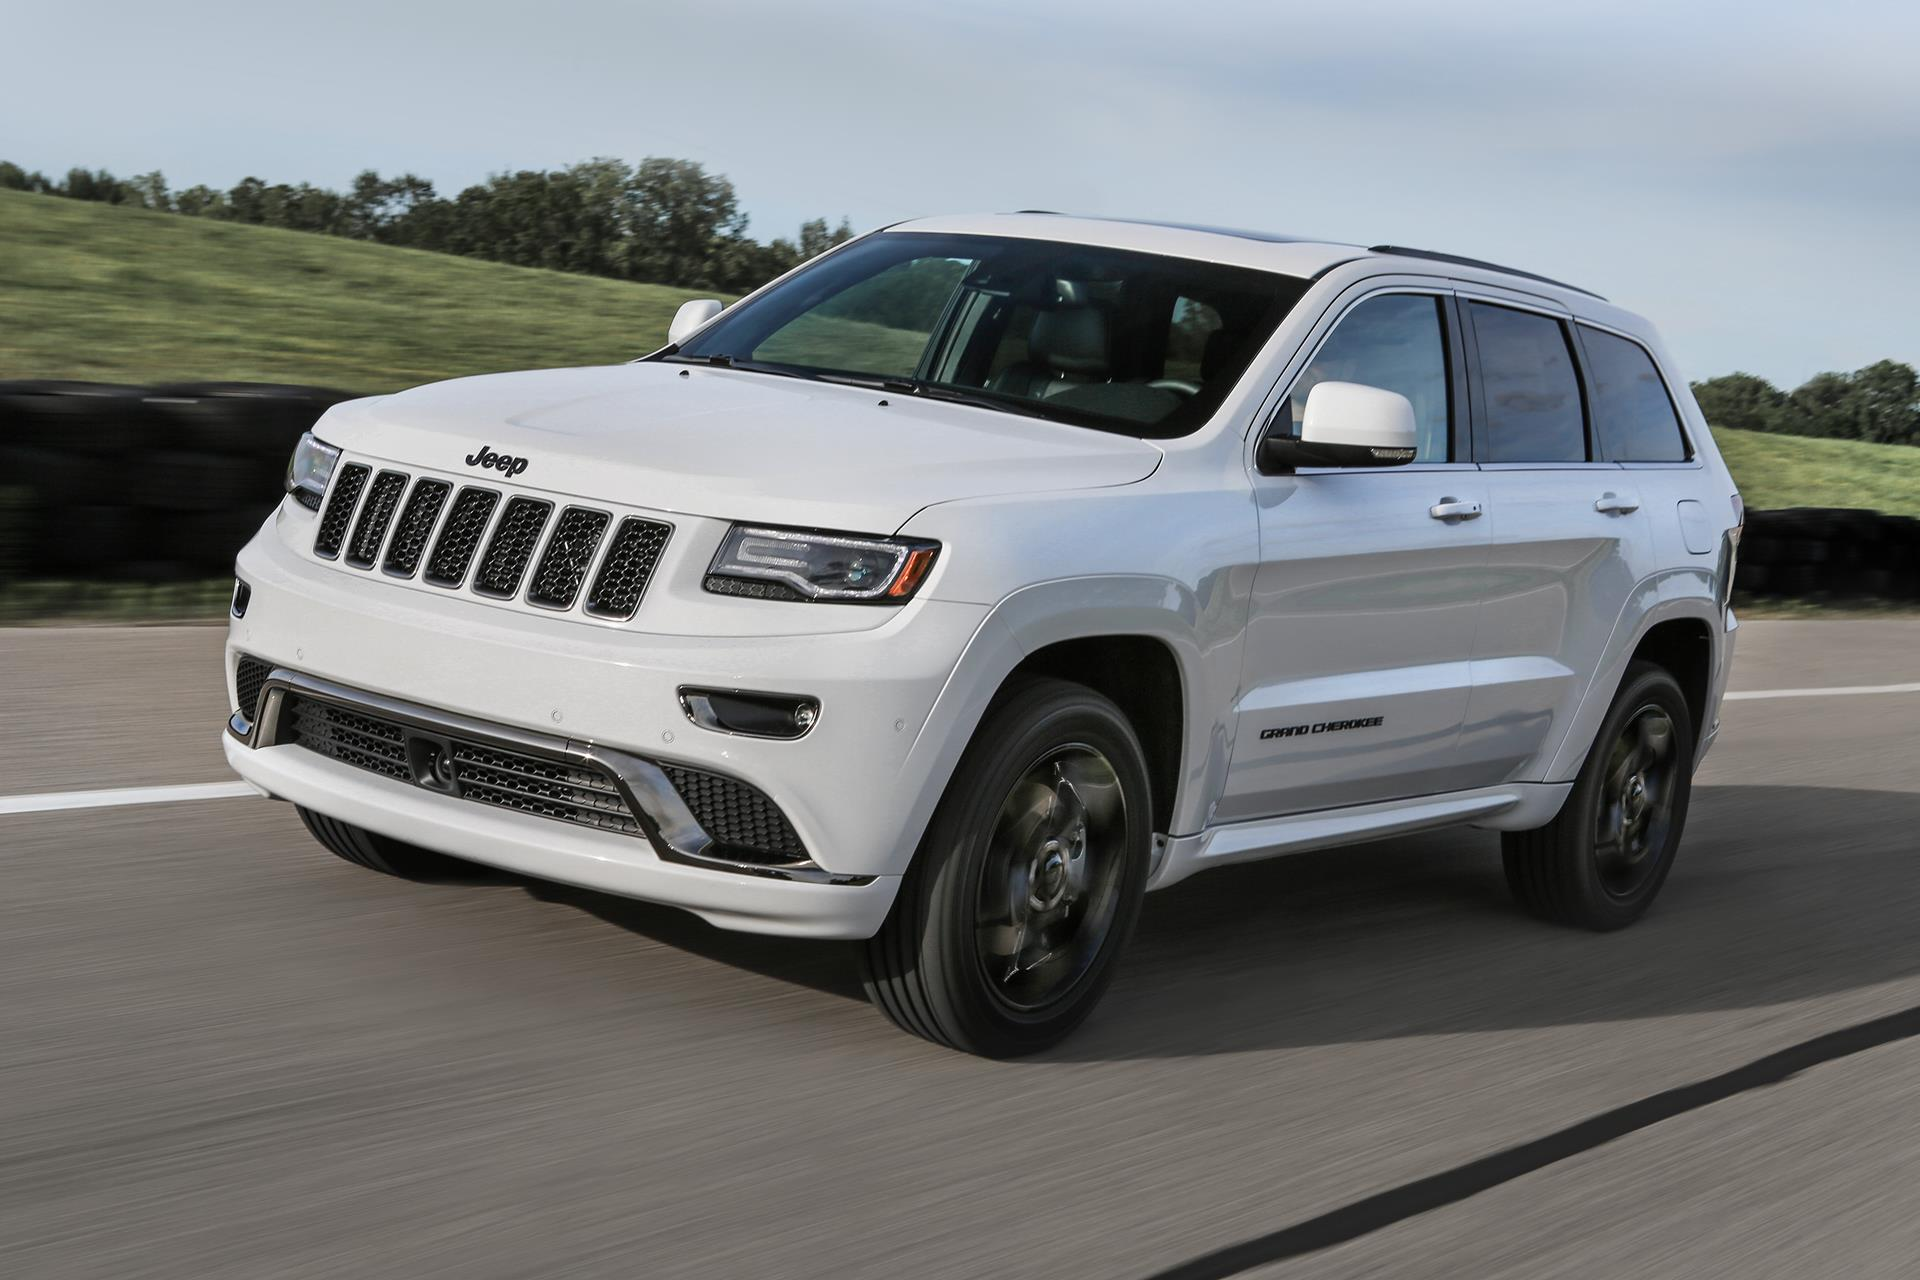 2016 Jeep Grand Cherokee SUV_01 2016 jeep grand cherokee conceptcarz com  at soozxer.org